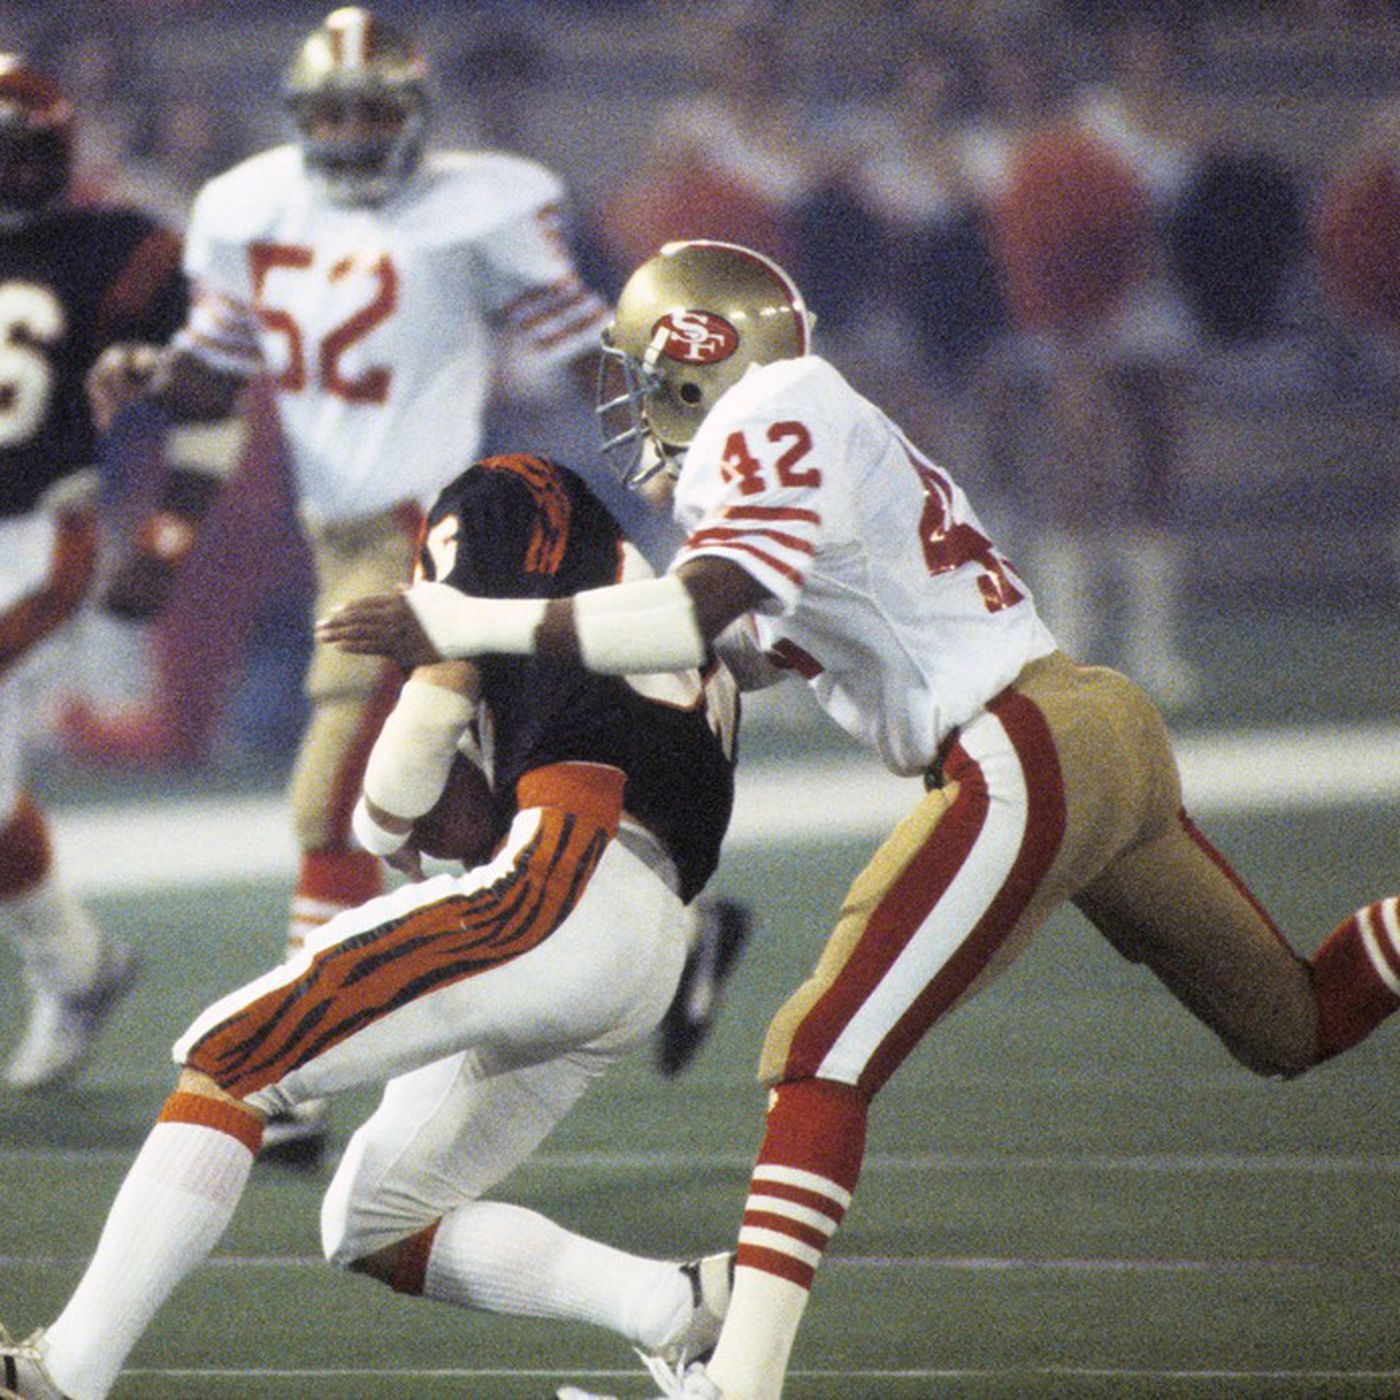 c910a6cf6273be Super Bowl history, Super Bowl XVI: 49ers get on the board against Bengals  - Niners Nation